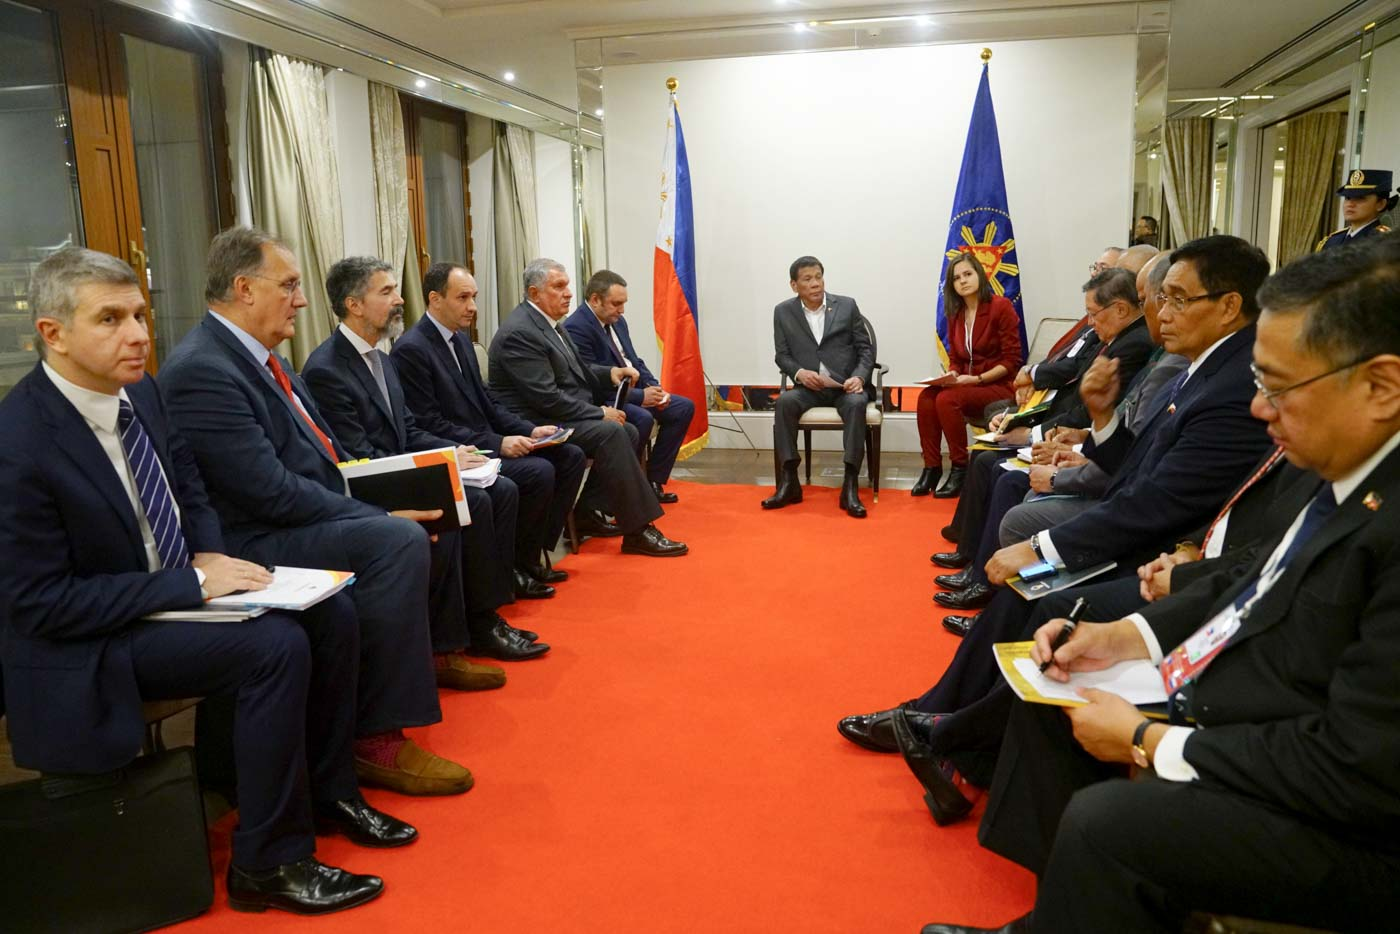 Duterte meets with CEO of Russian oil firm Rosneft